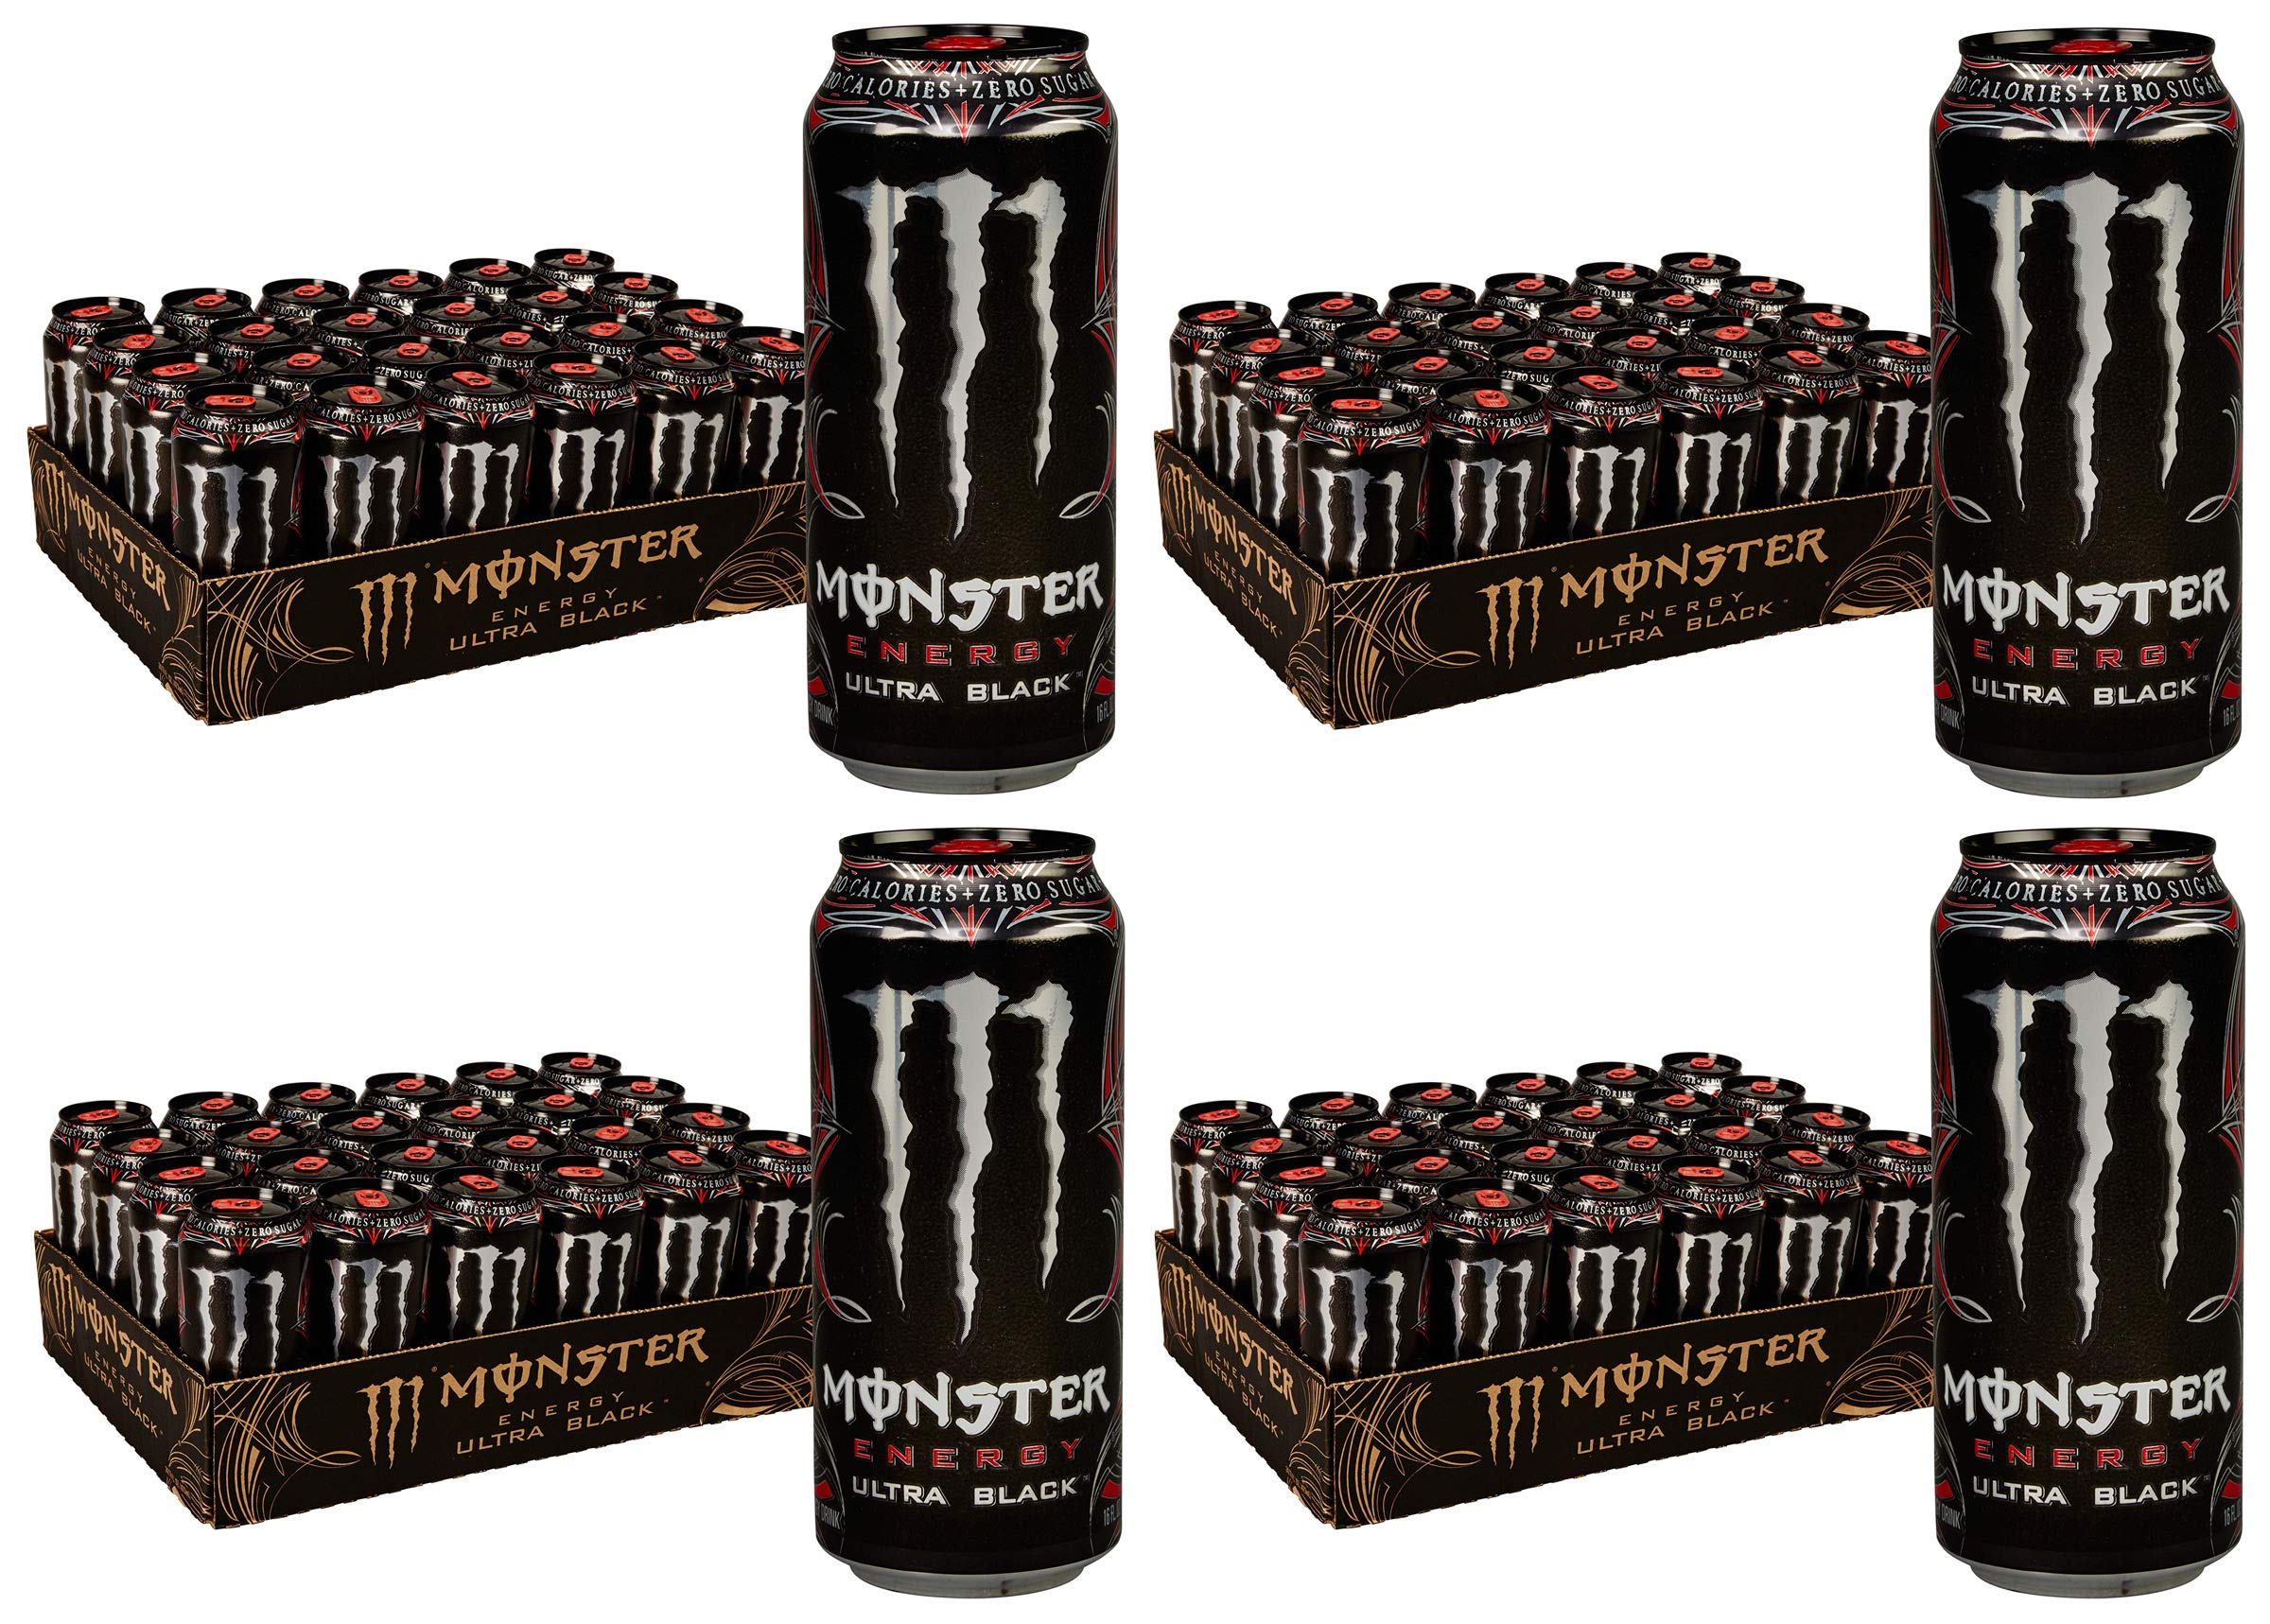 KRRTUCGY Ultra Black, Sugar Free Energy Drink, 16 Ounce, 4 Cases of 24 Cans